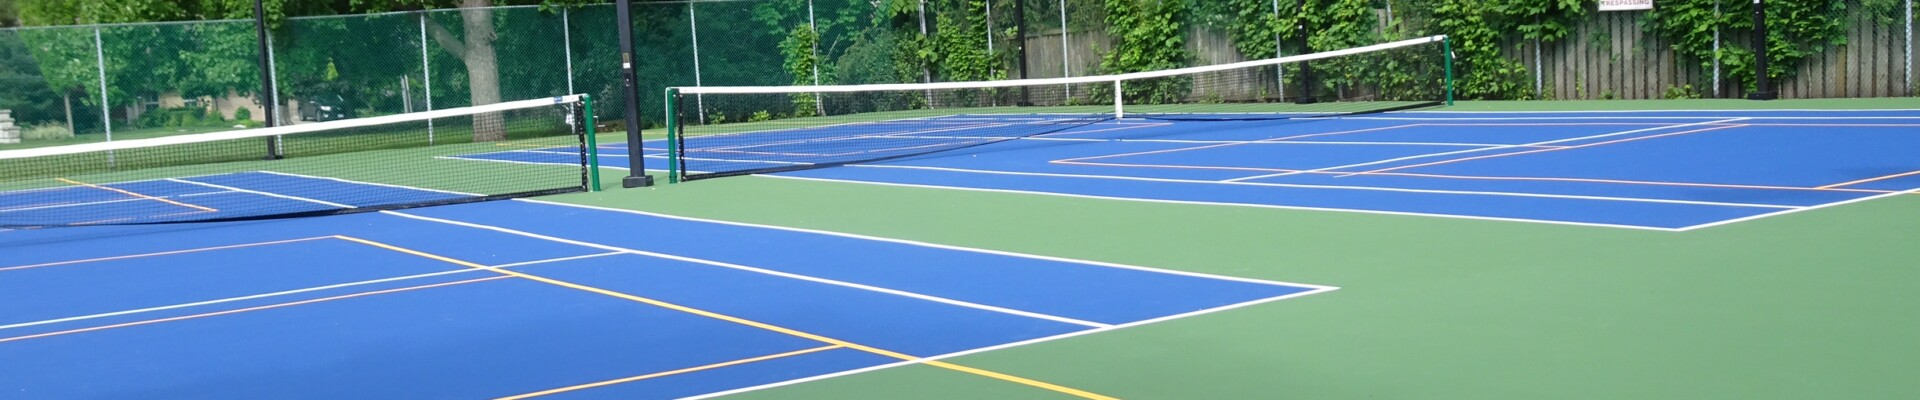 courts-1-1920x400